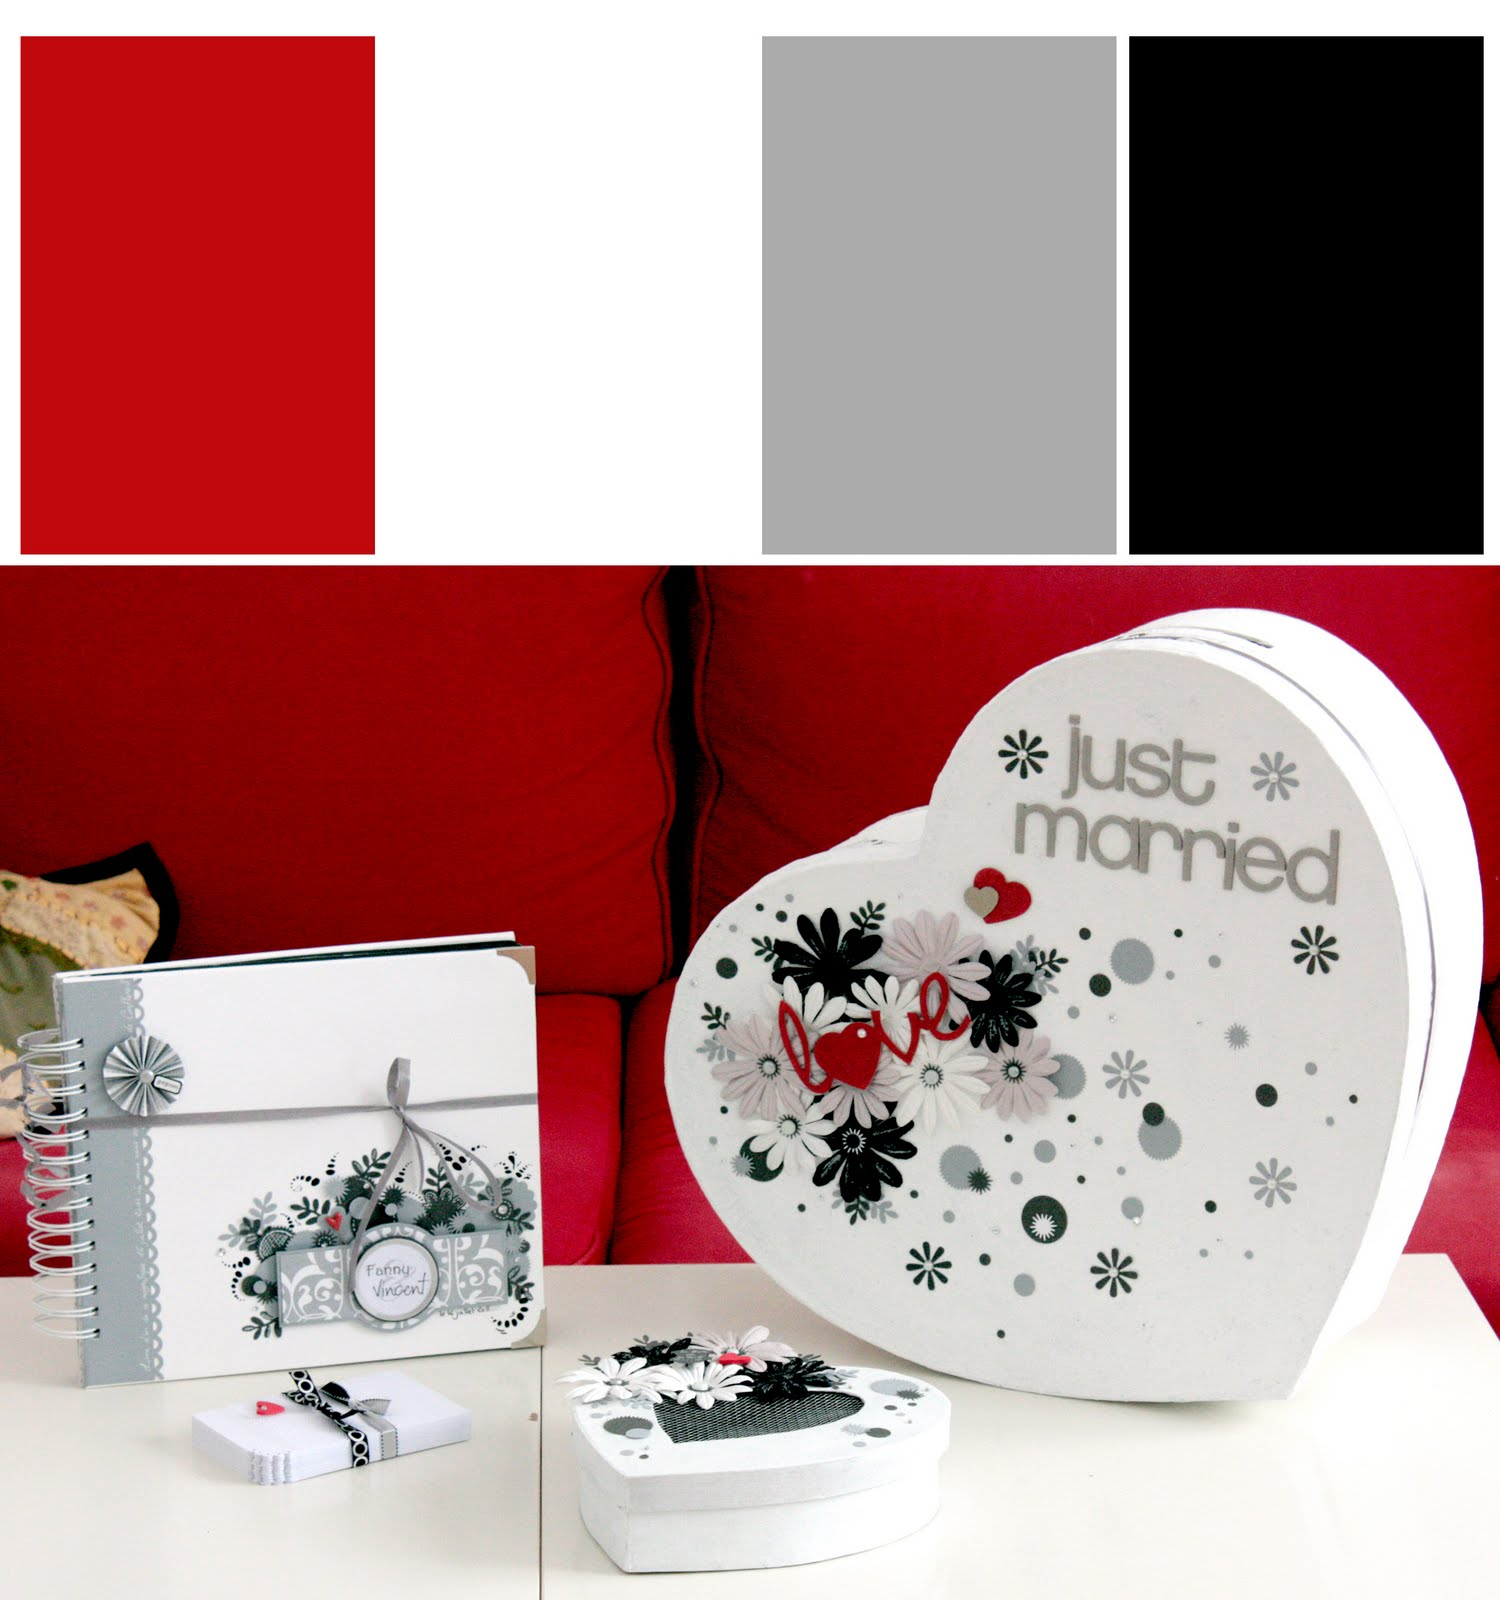 jolis papiers mariage noir gris rouge et argent. Black Bedroom Furniture Sets. Home Design Ideas